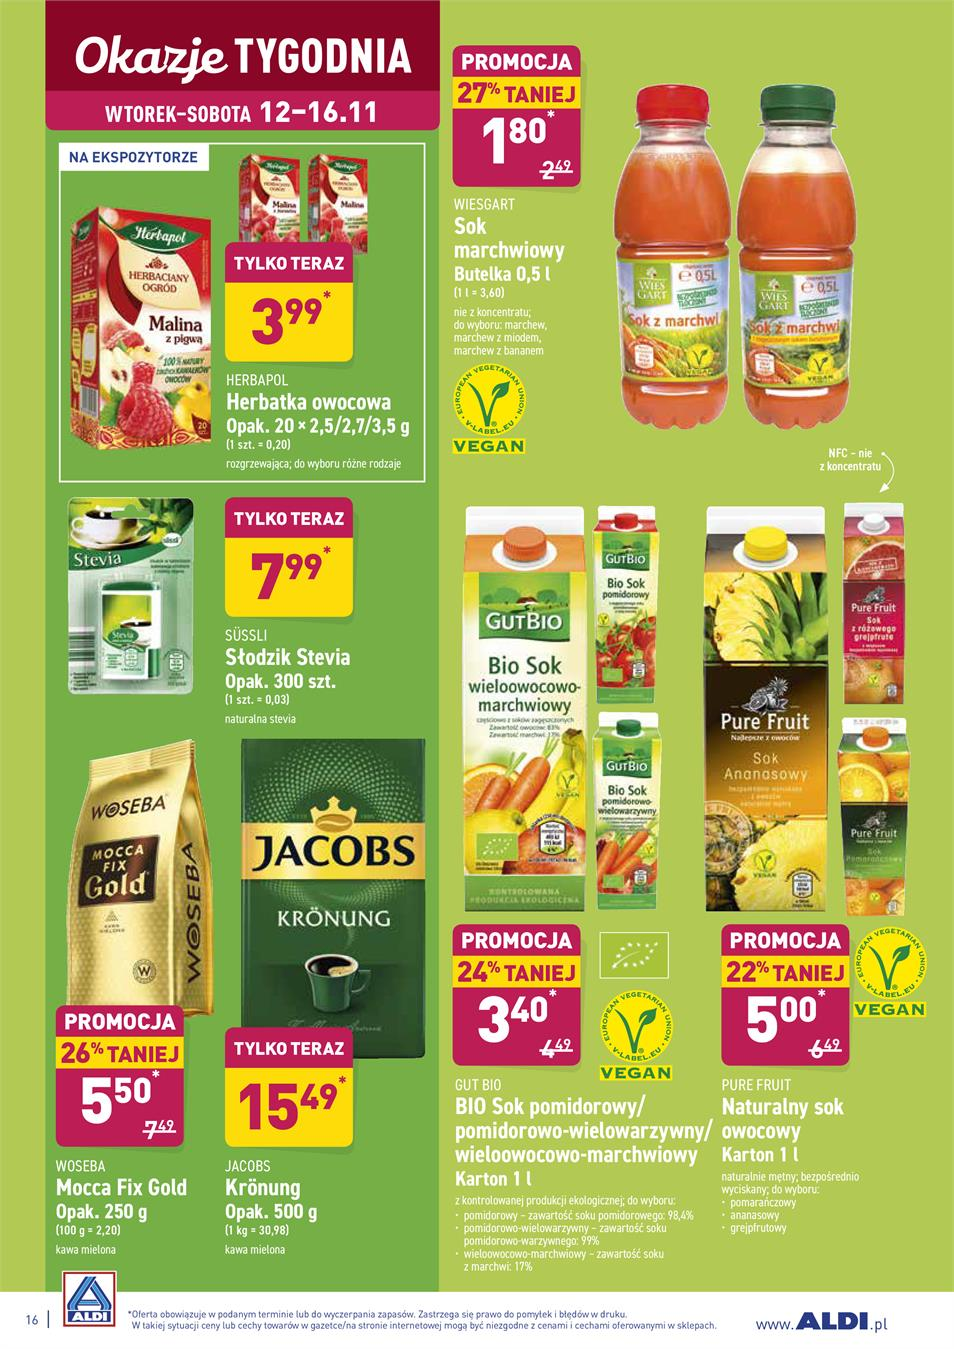 Gazetka ALDI SP Z O O  nr 16 od 2019-11-12 do 2019-11-16